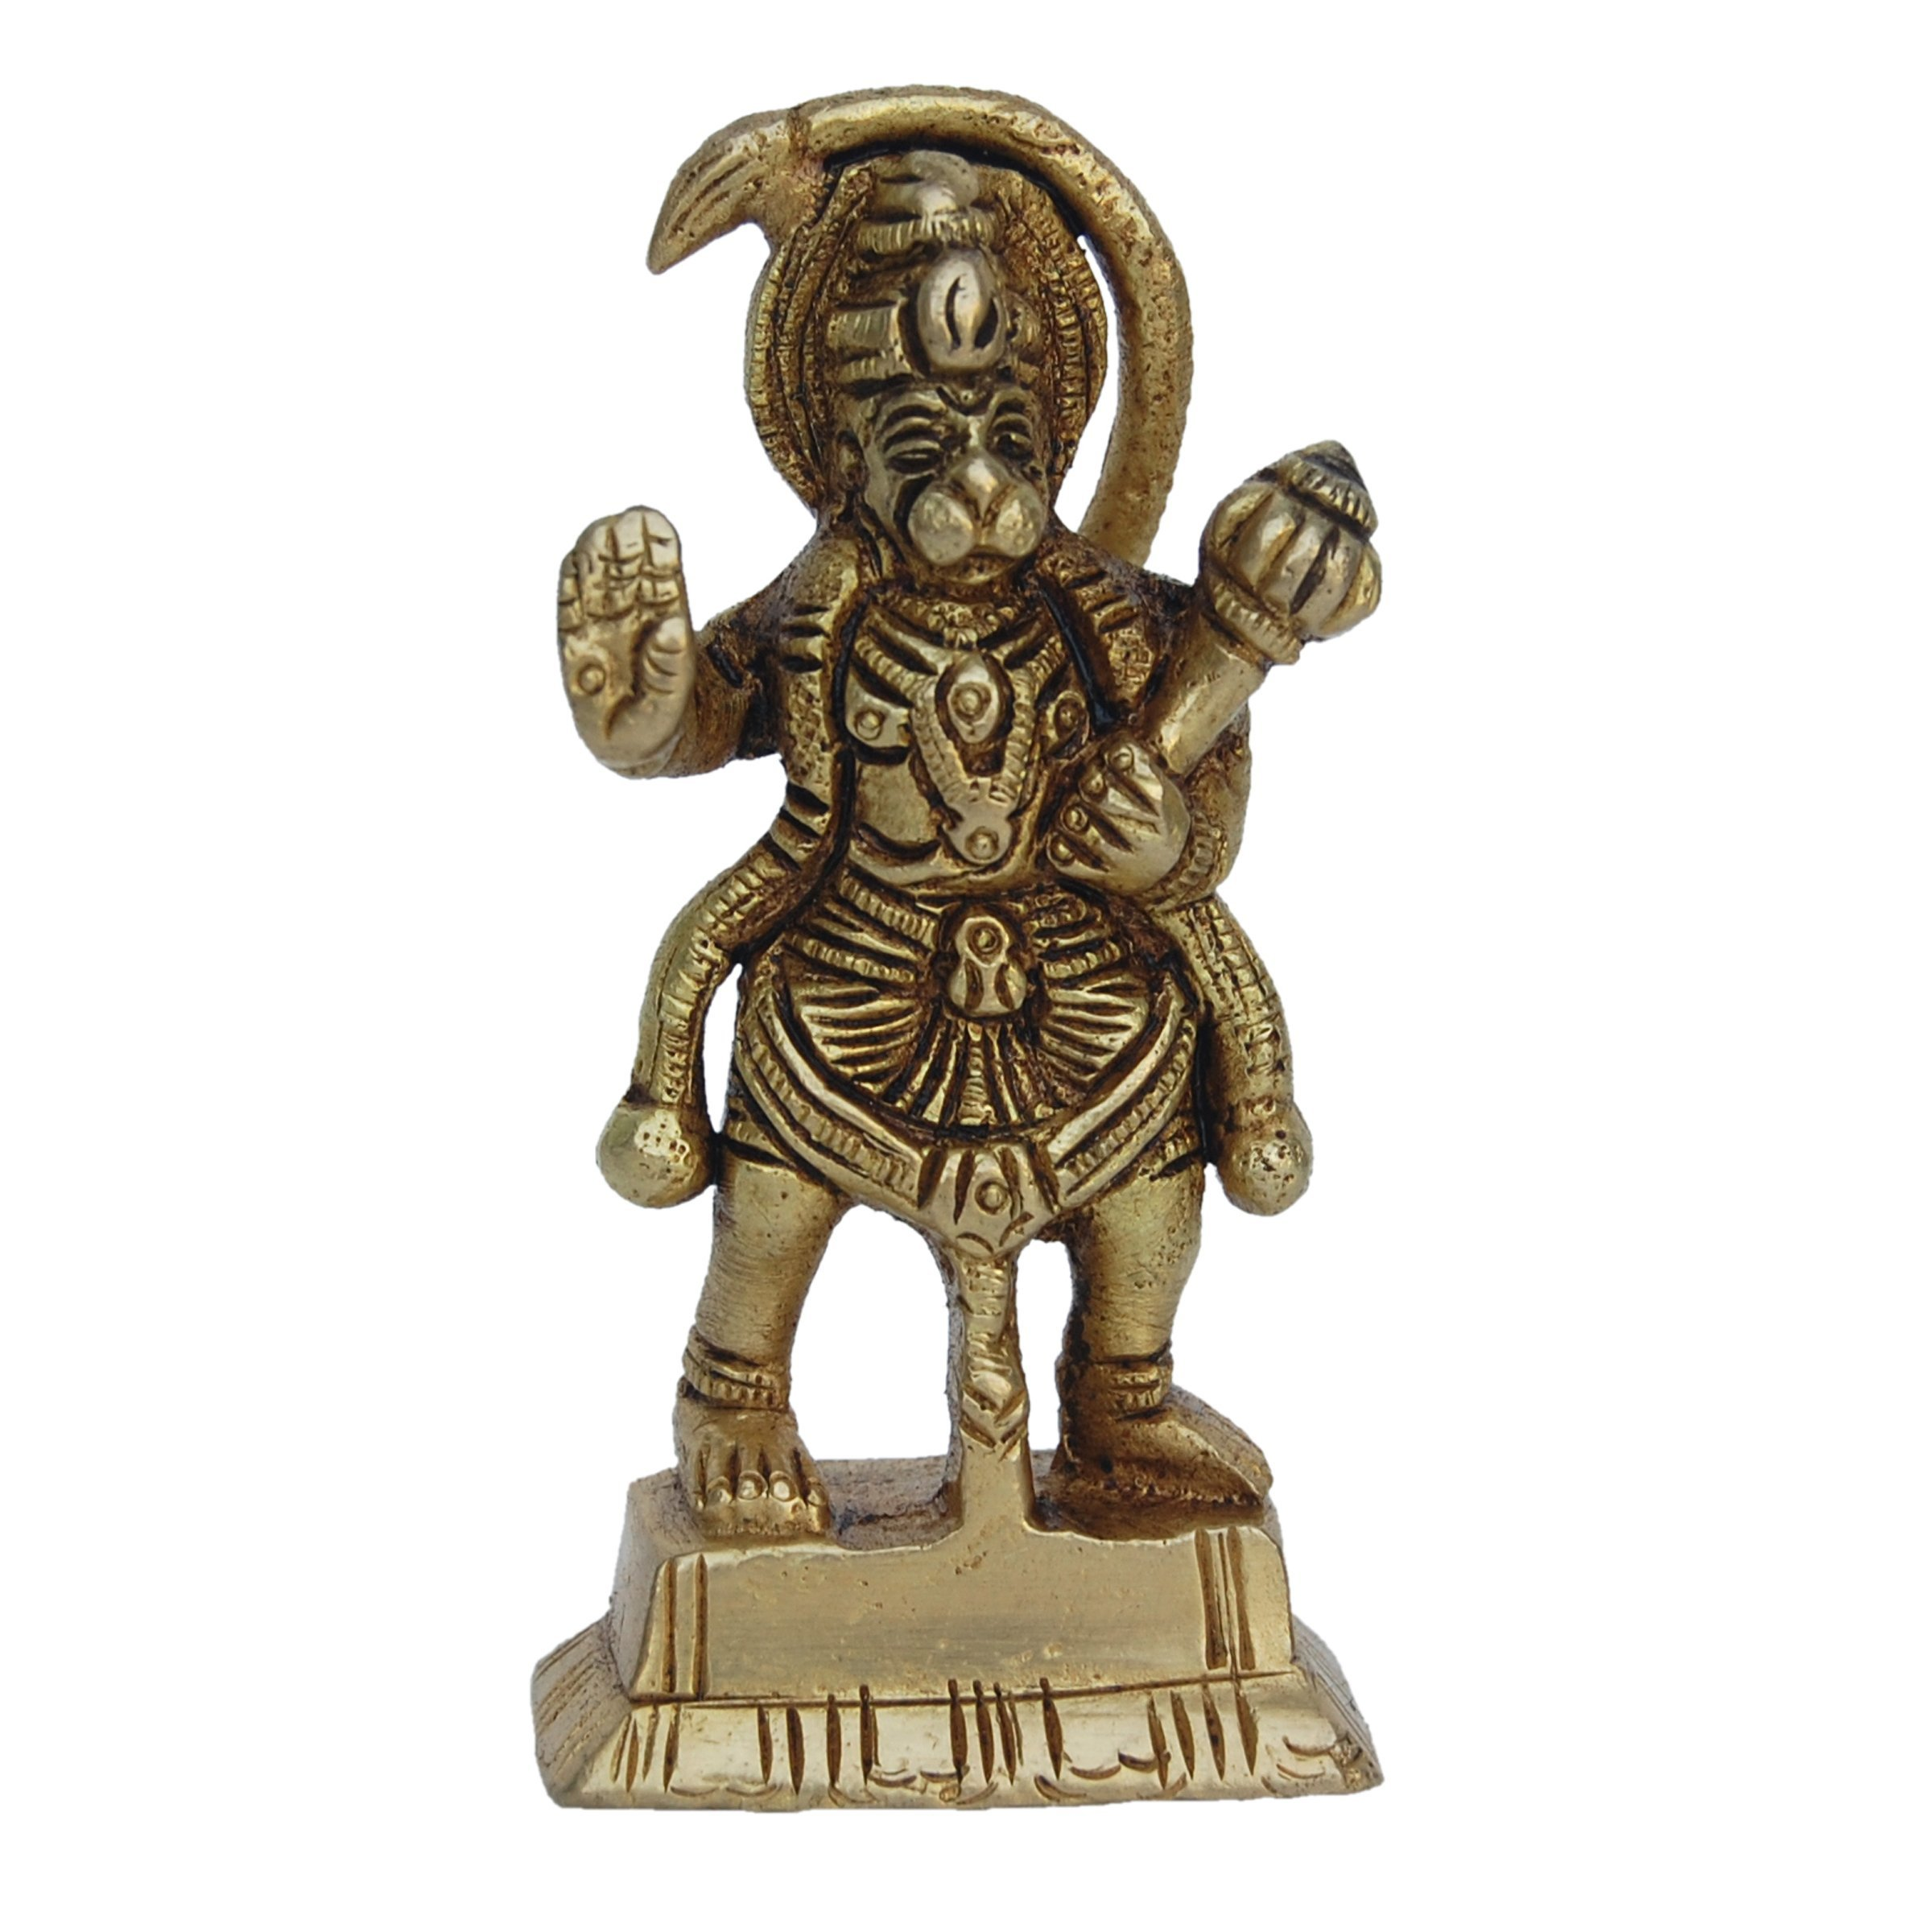 6a32aab0f Idols   Figurines  Buy Idols   Figurines Online at Low Prices in ...